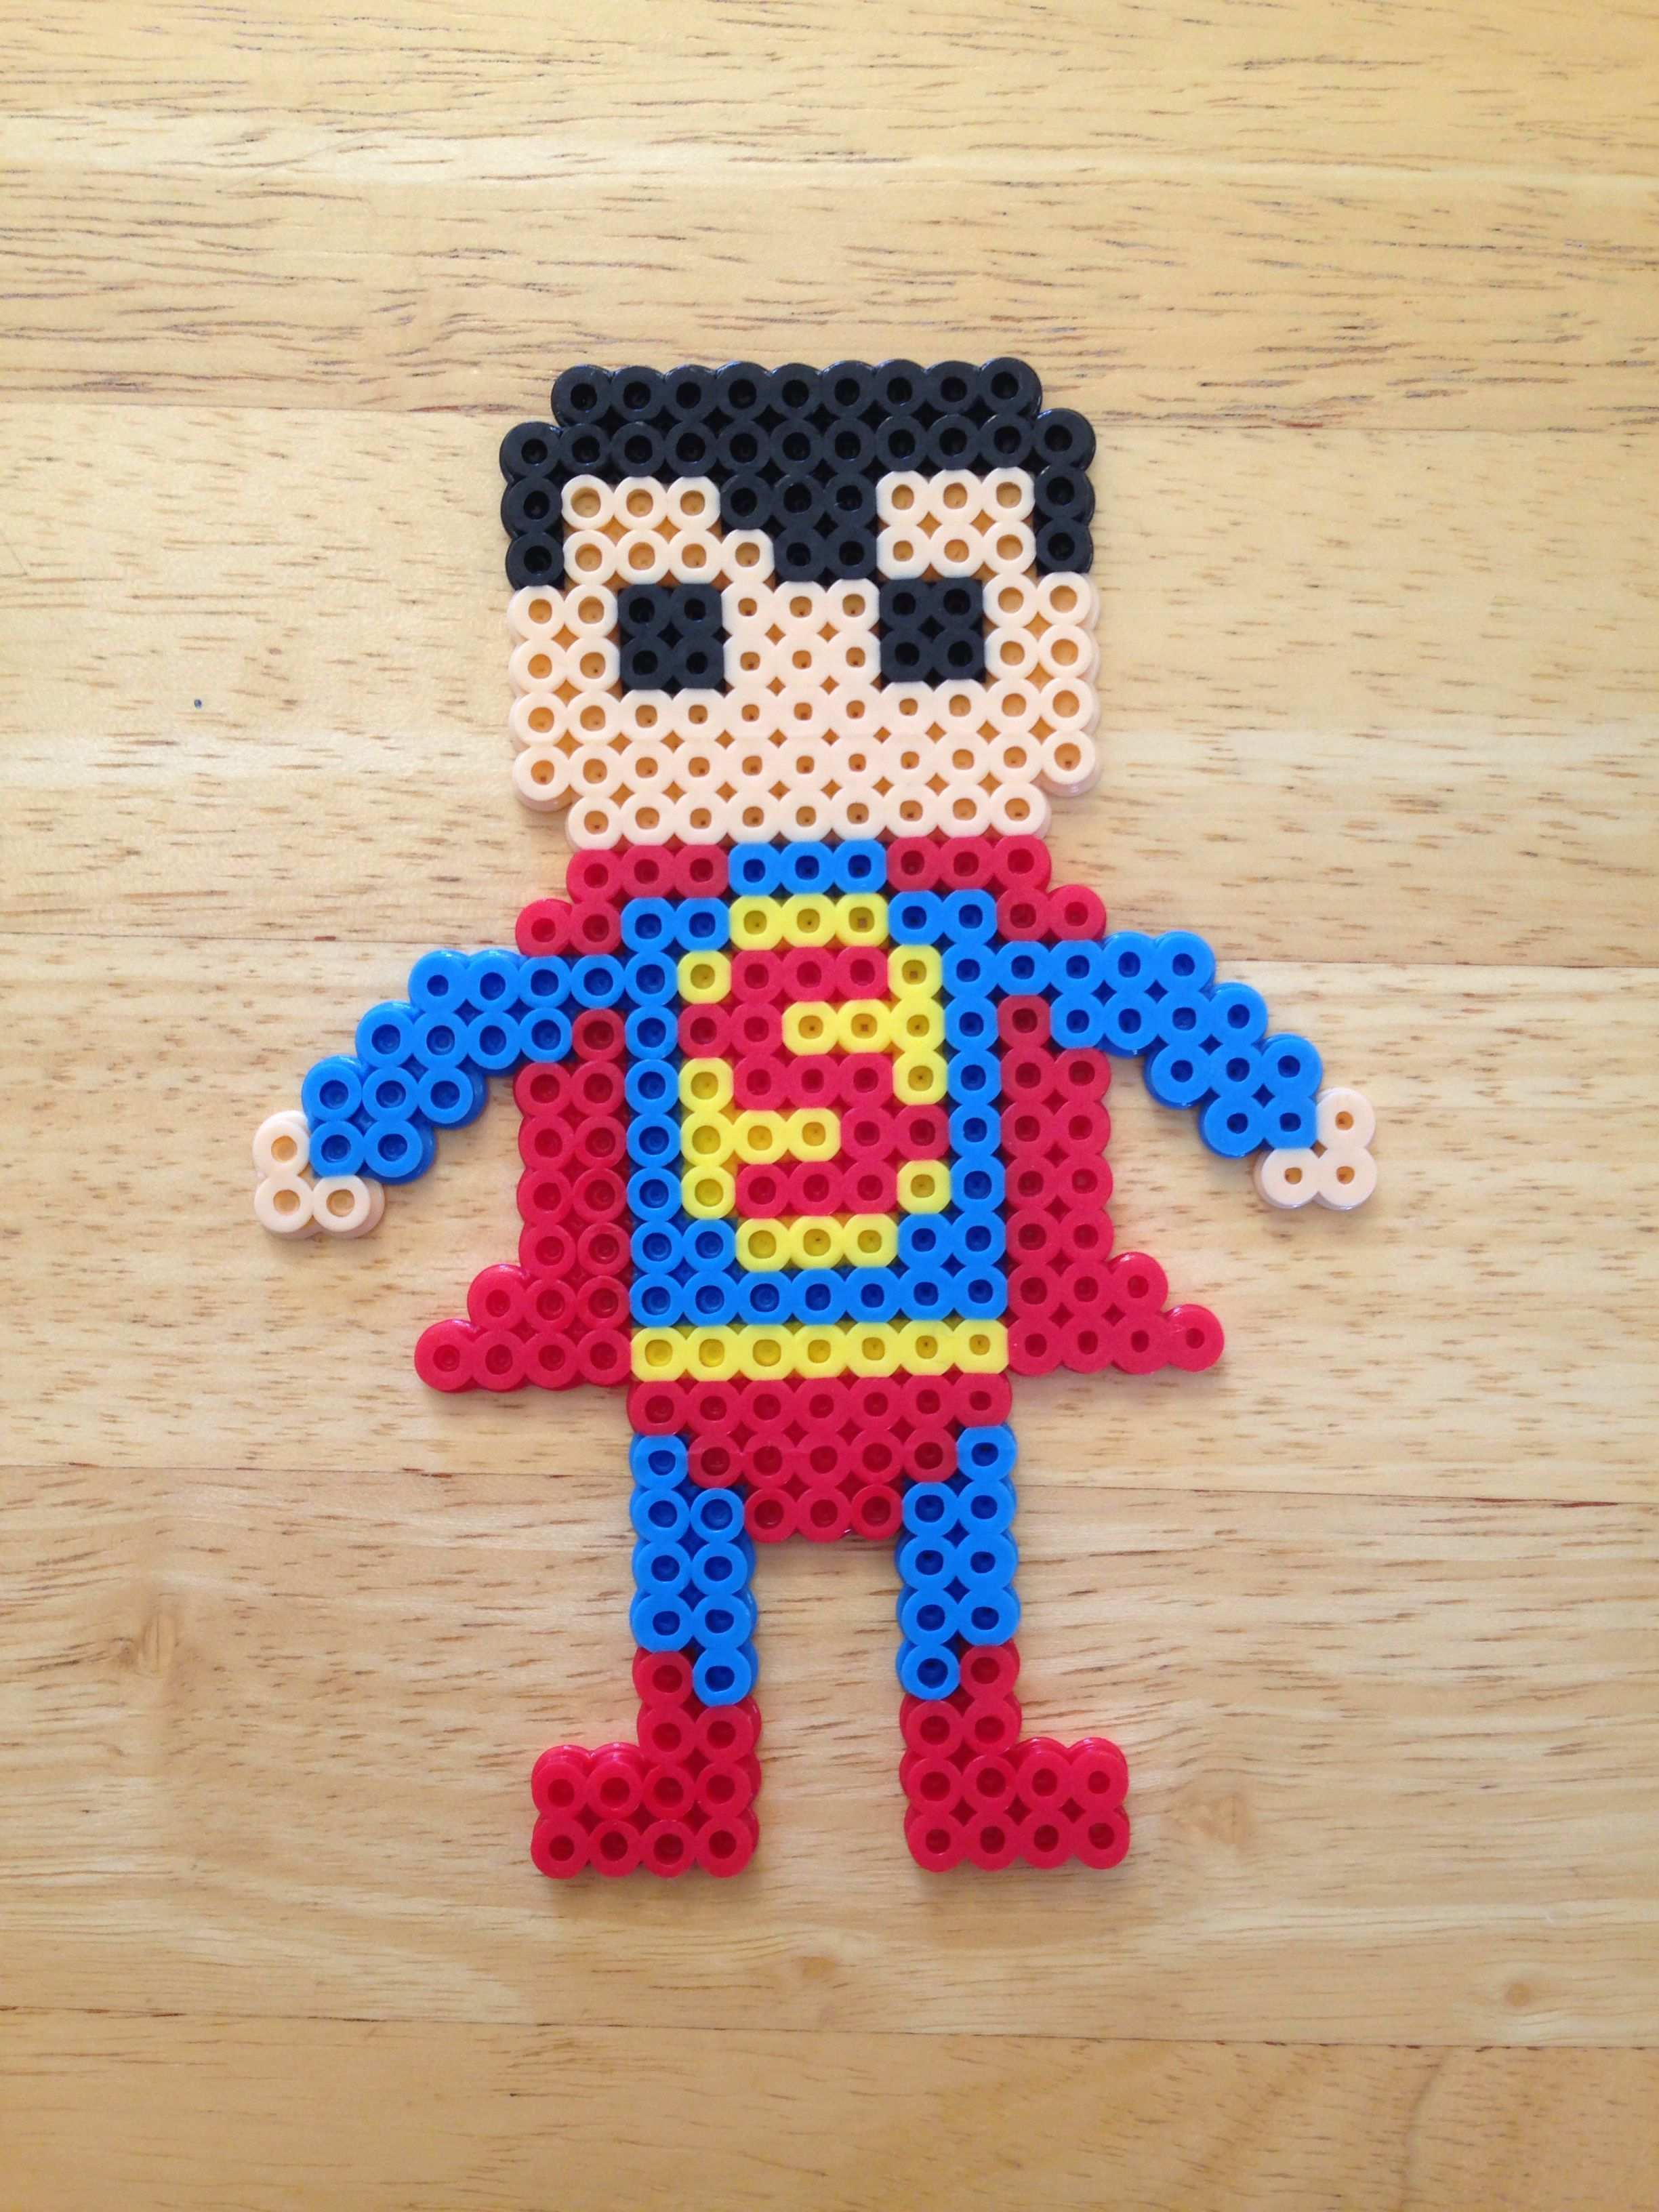 Pin By Camilla Stahl On Aron Marvel Cross Stitch Crafts Arts And Crafts